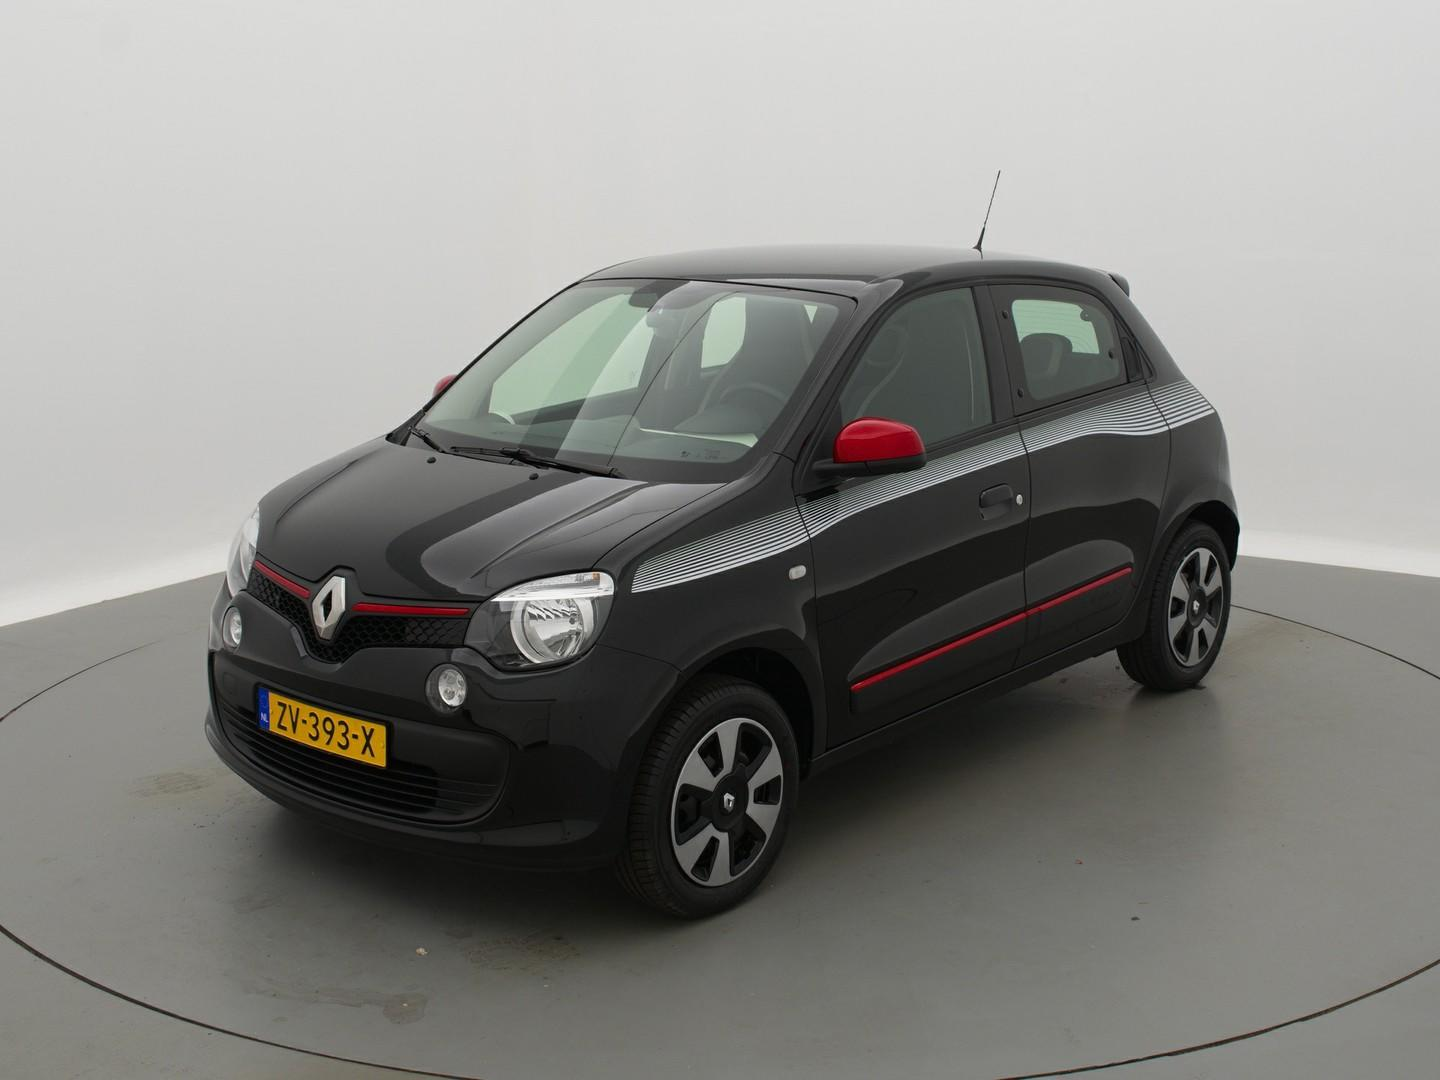 Renault Twingo Sce 70 collection *demo voordeel* // bluetooth / airco / dab